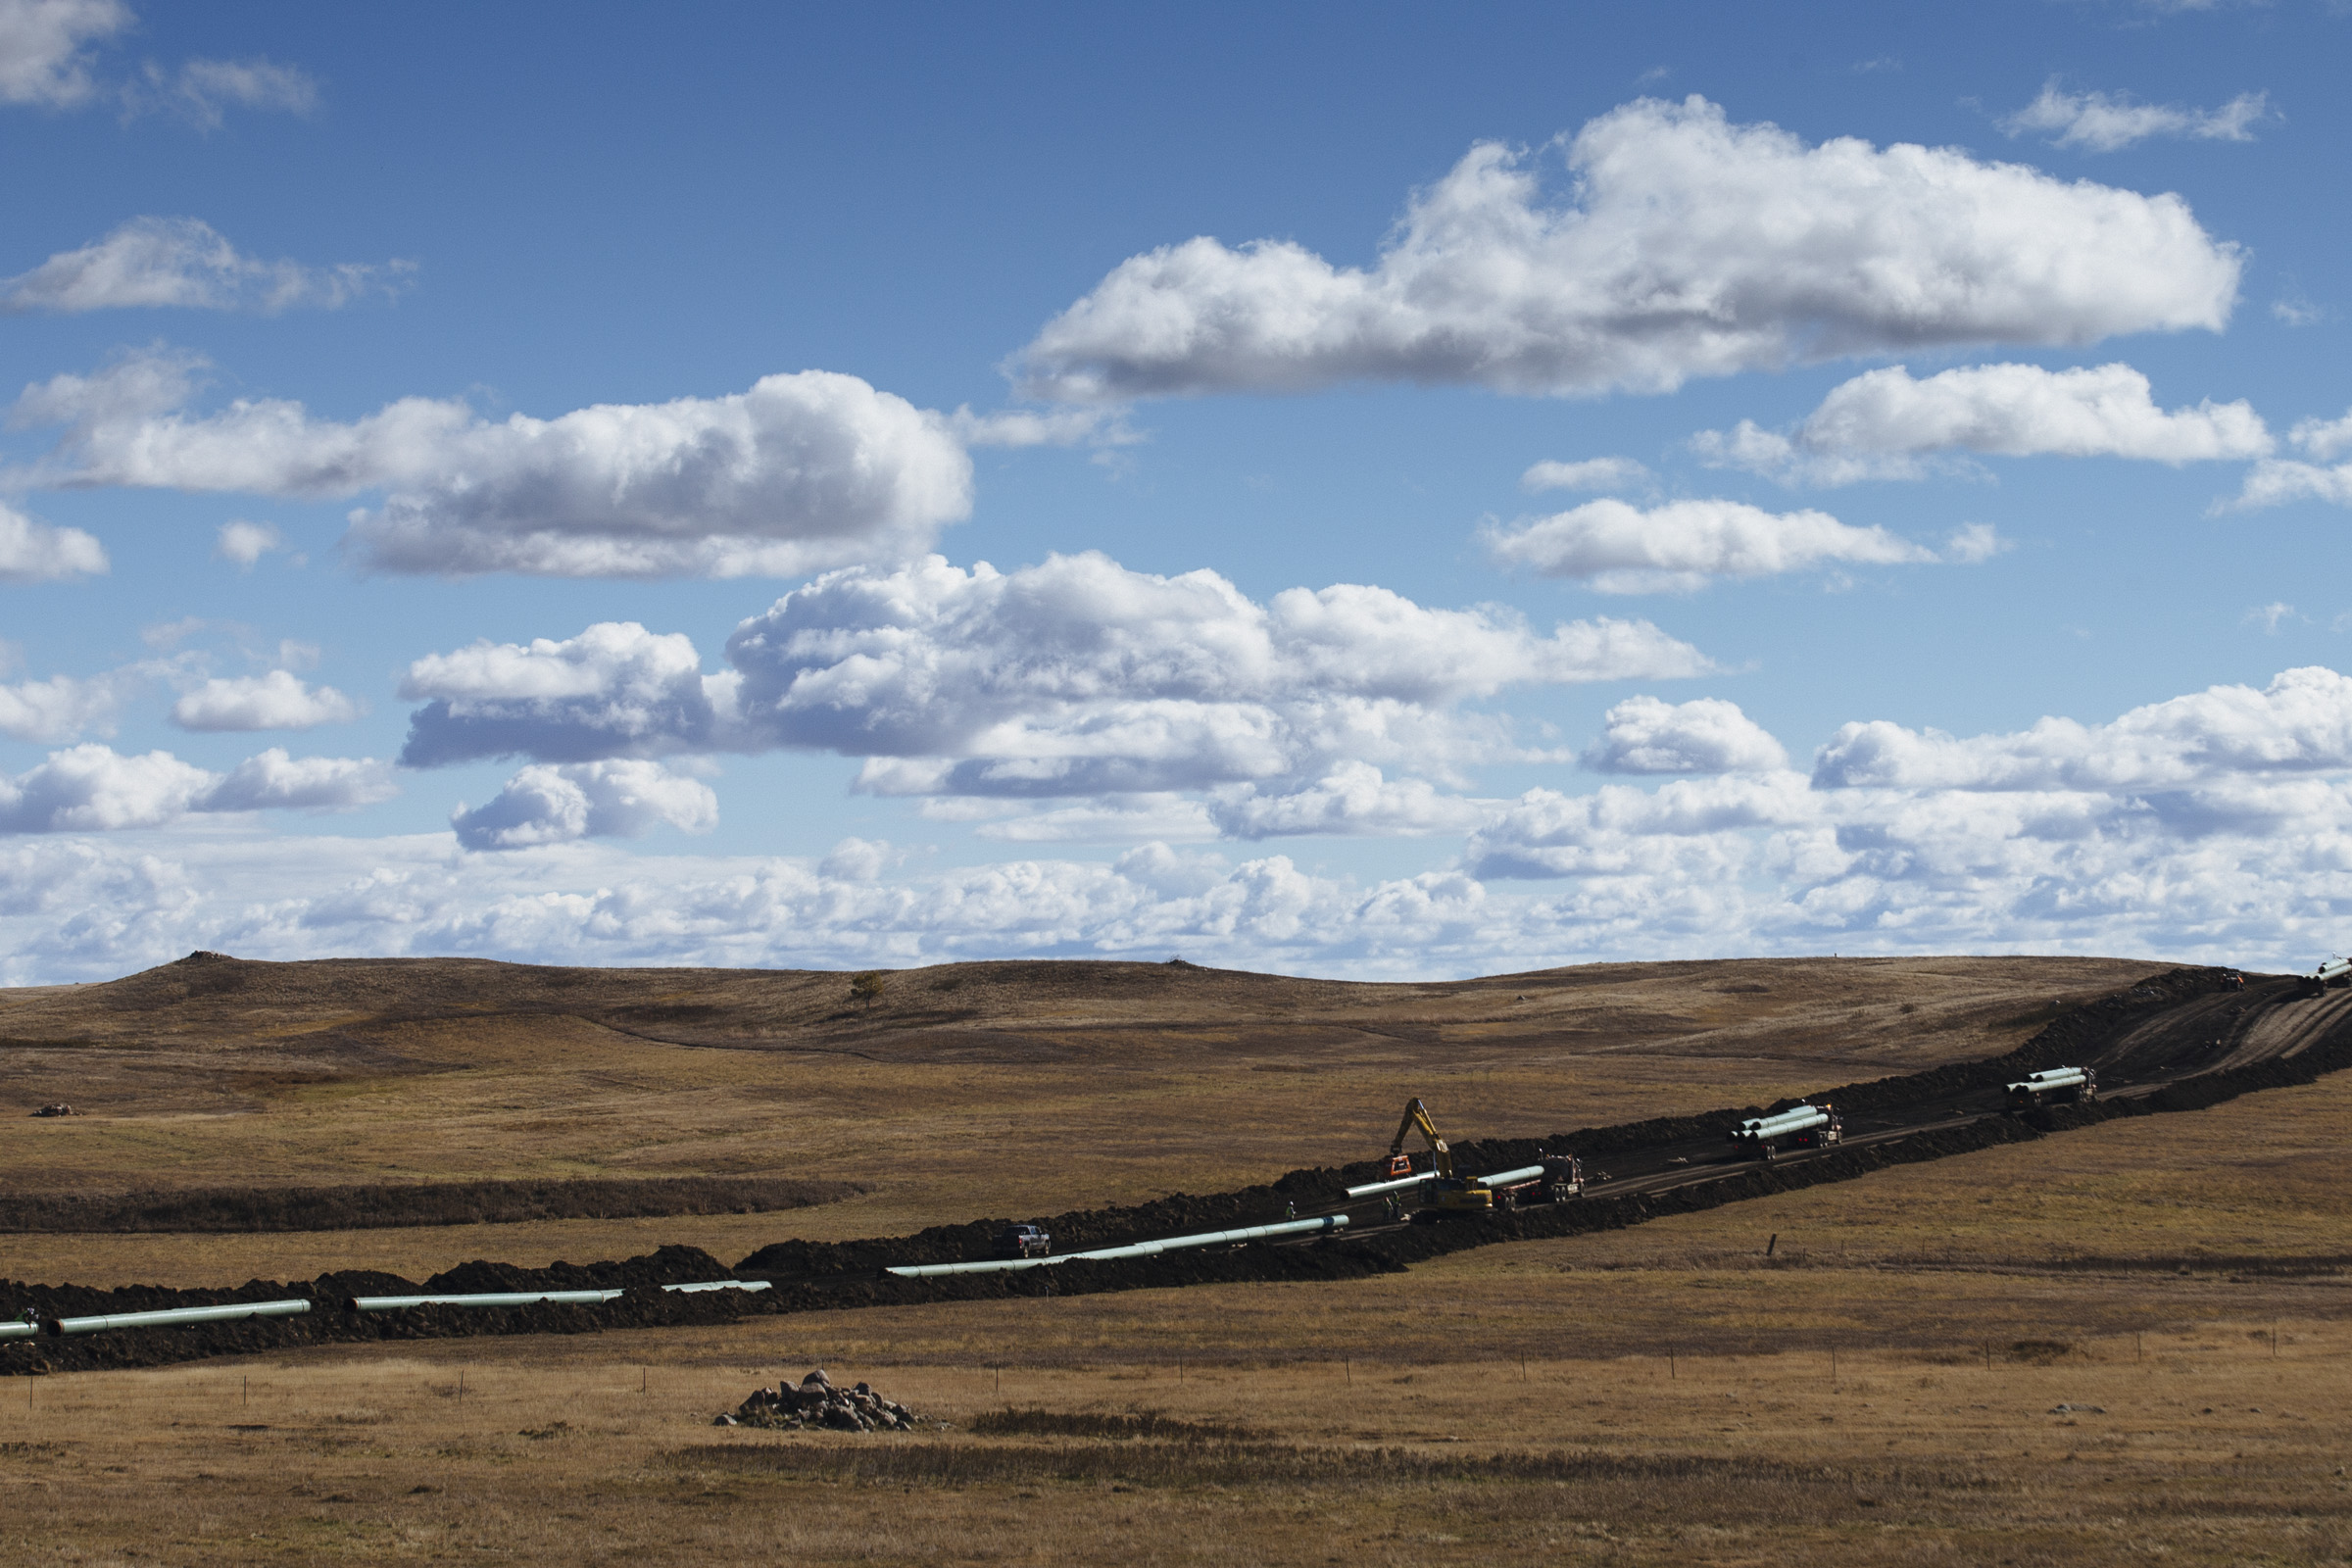 A rock formation, believed to be a sacred cairn signifying a burial site, is seen in front of Dakota Access Pipeline construction on Tuesday, Oct. 18, 2016. The Standing Rock Sioux Tribe claims that the 1,172-mile underground crude oil pipeline will disturb sacred sites and has the potential to contaminate the Missouri River. (Photo by Angus Mordant/Groundtruth)